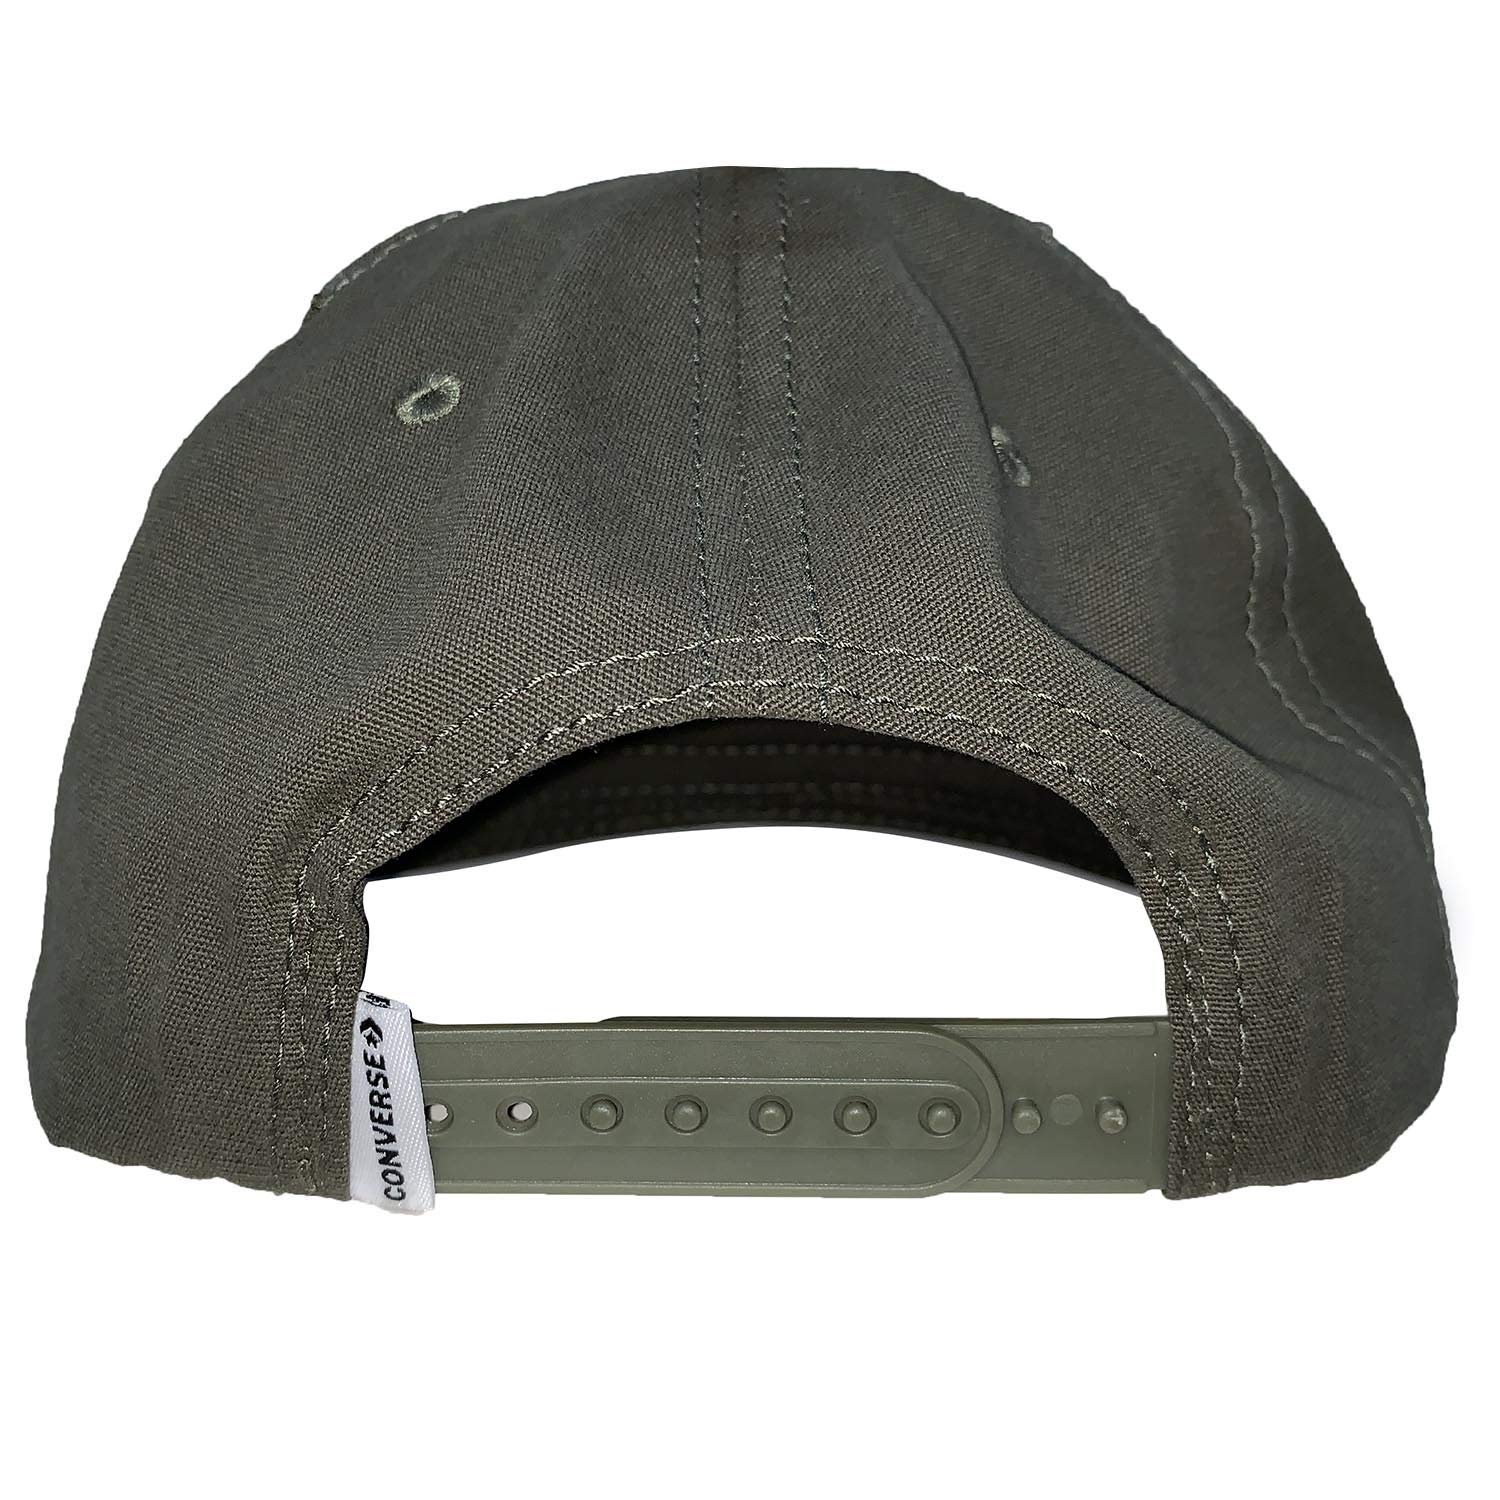 714d696305f2a Amazon.com  Converse Classic Twill Cap - Black  Sports   Outdoors